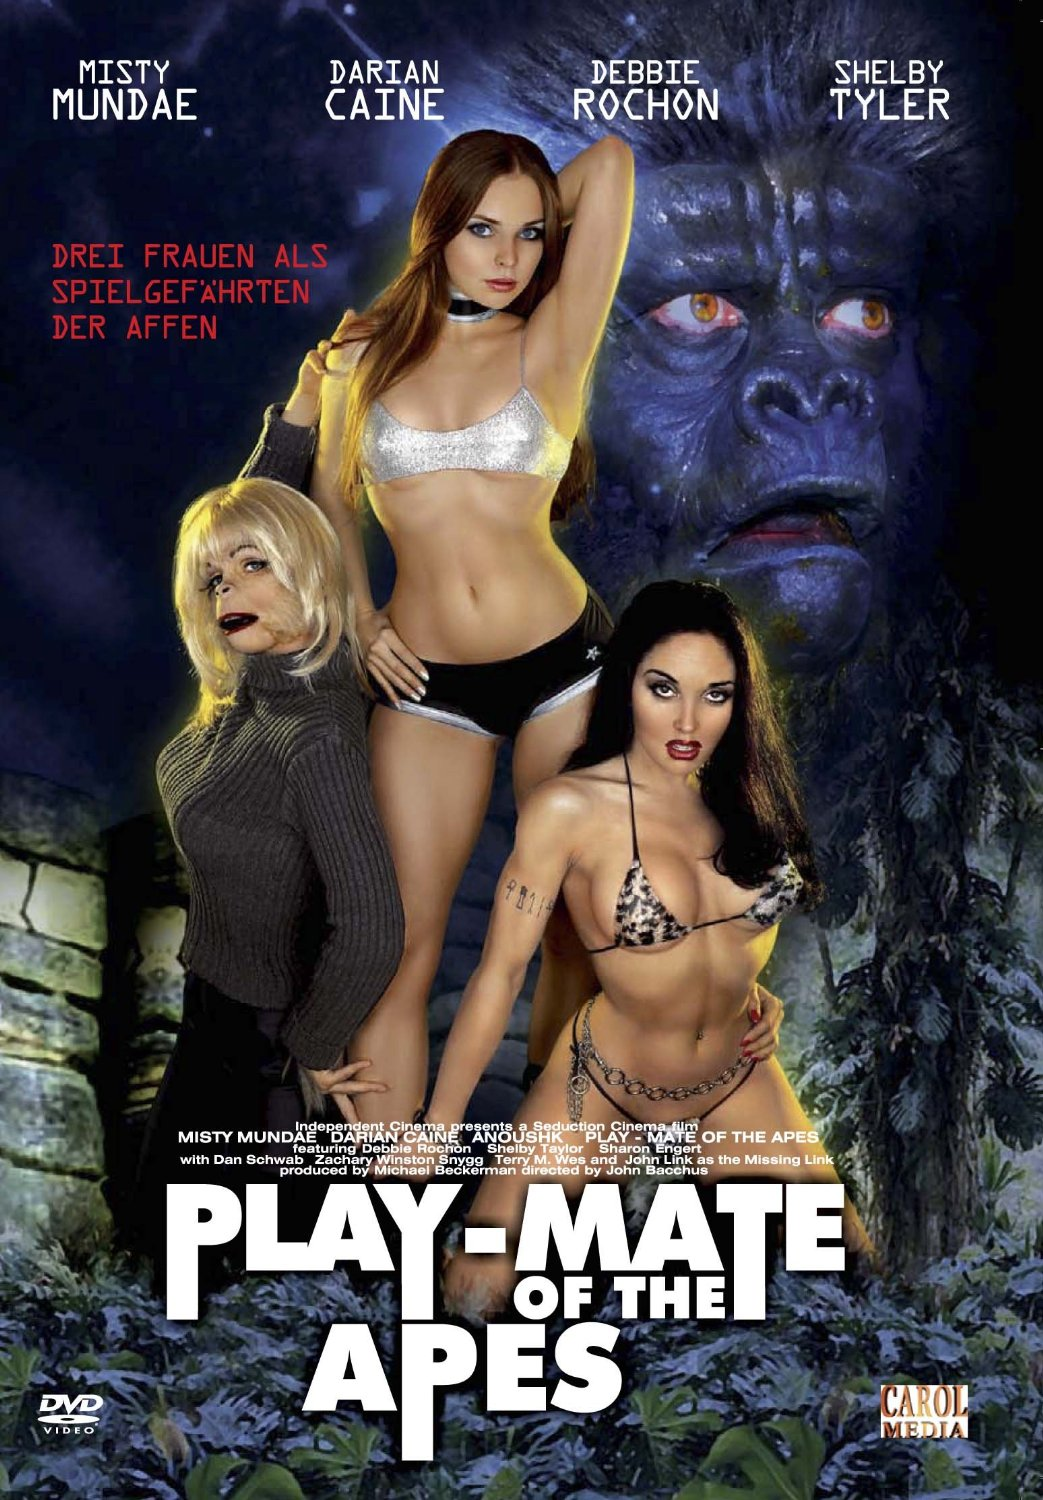 Play mate of the apes